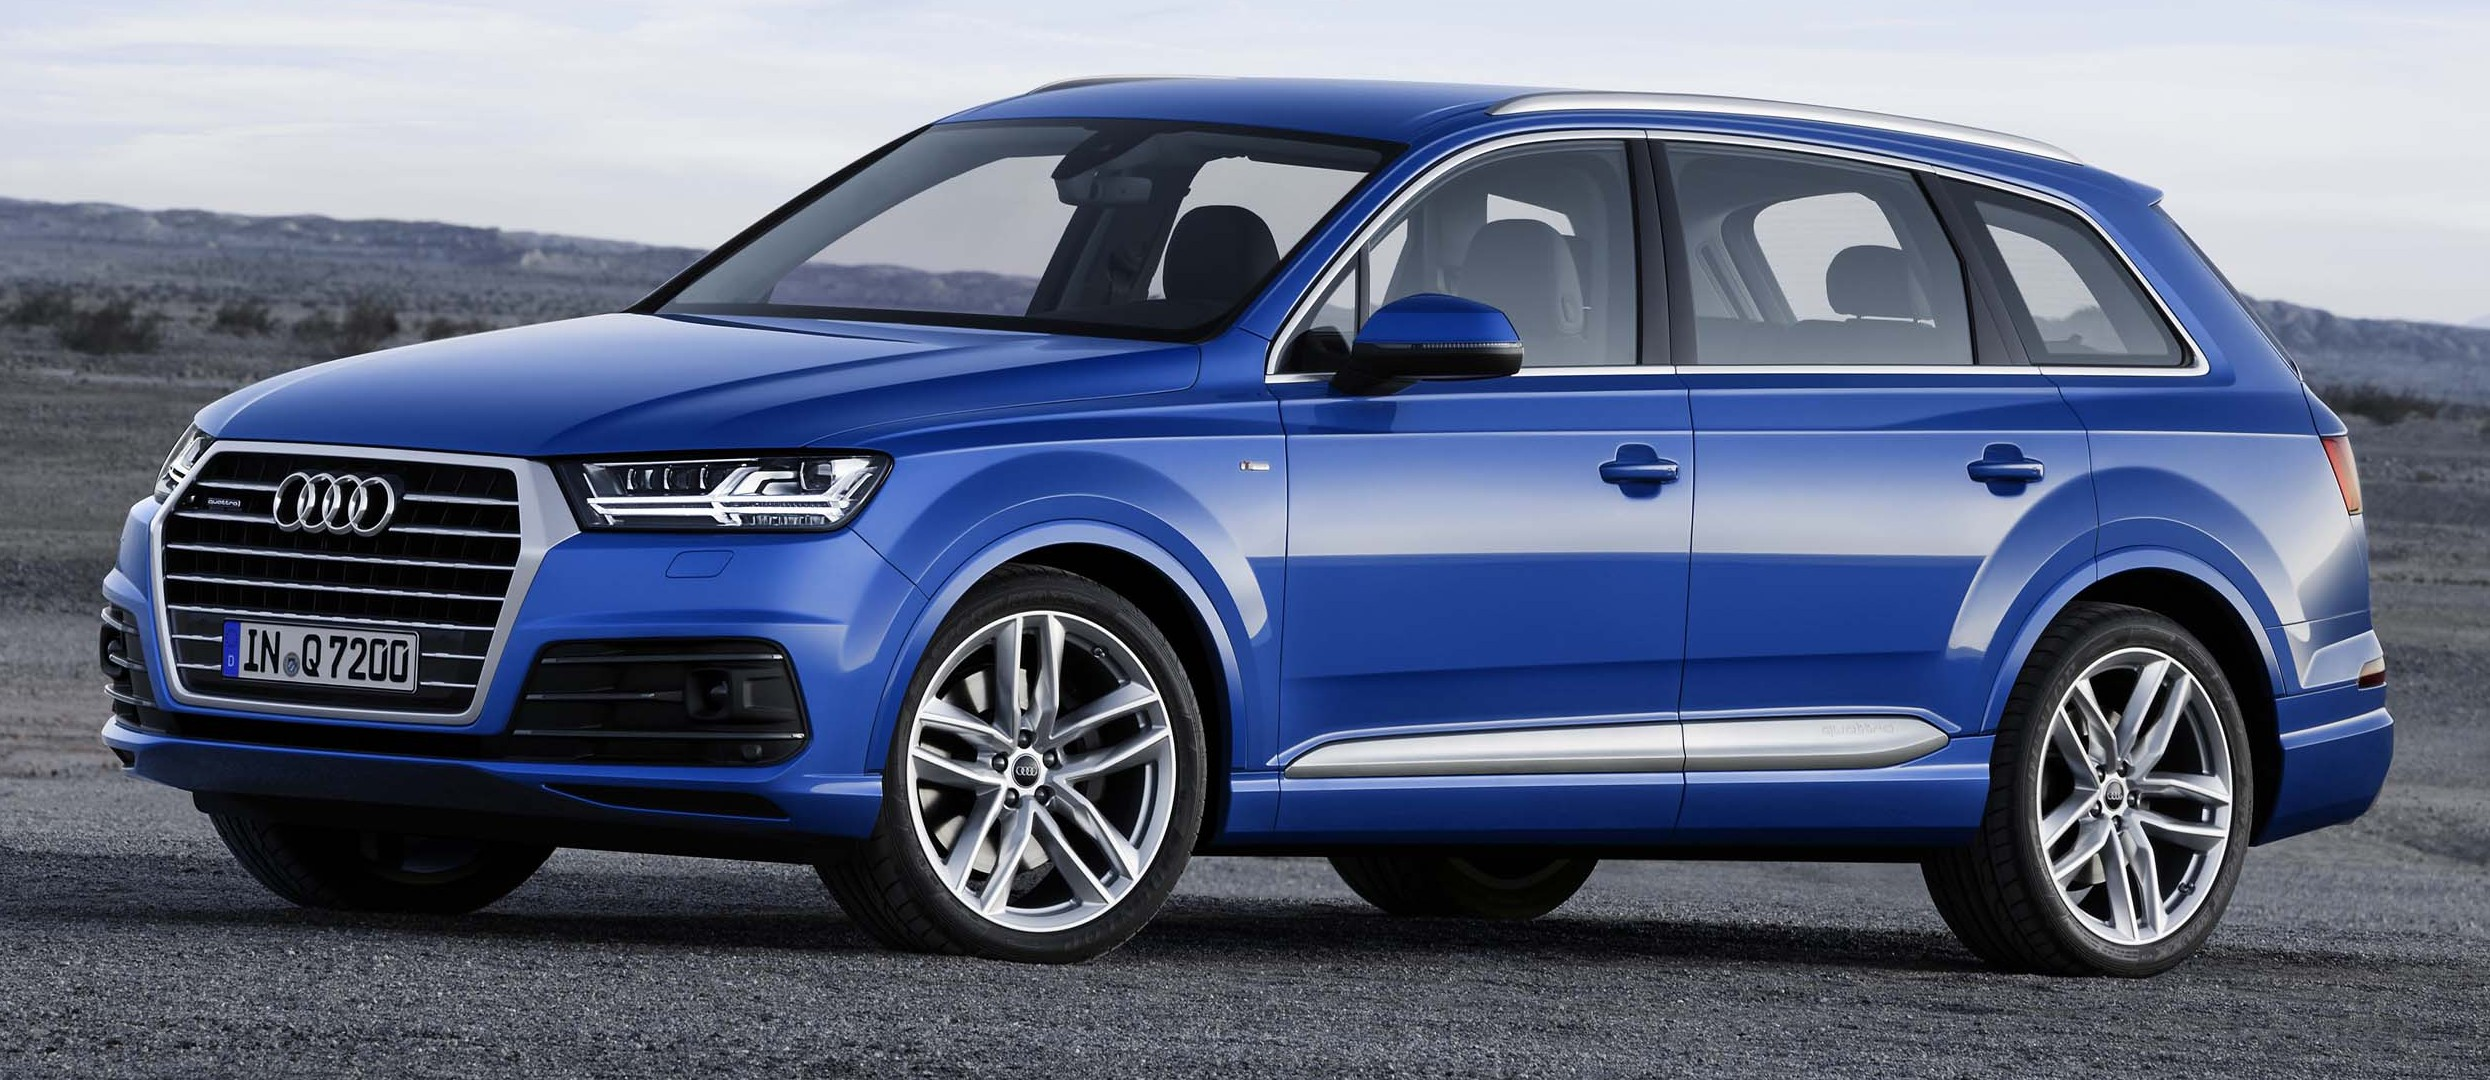 Audi Q7 Second Generation 7 Seater Suv Debuts Image 295893